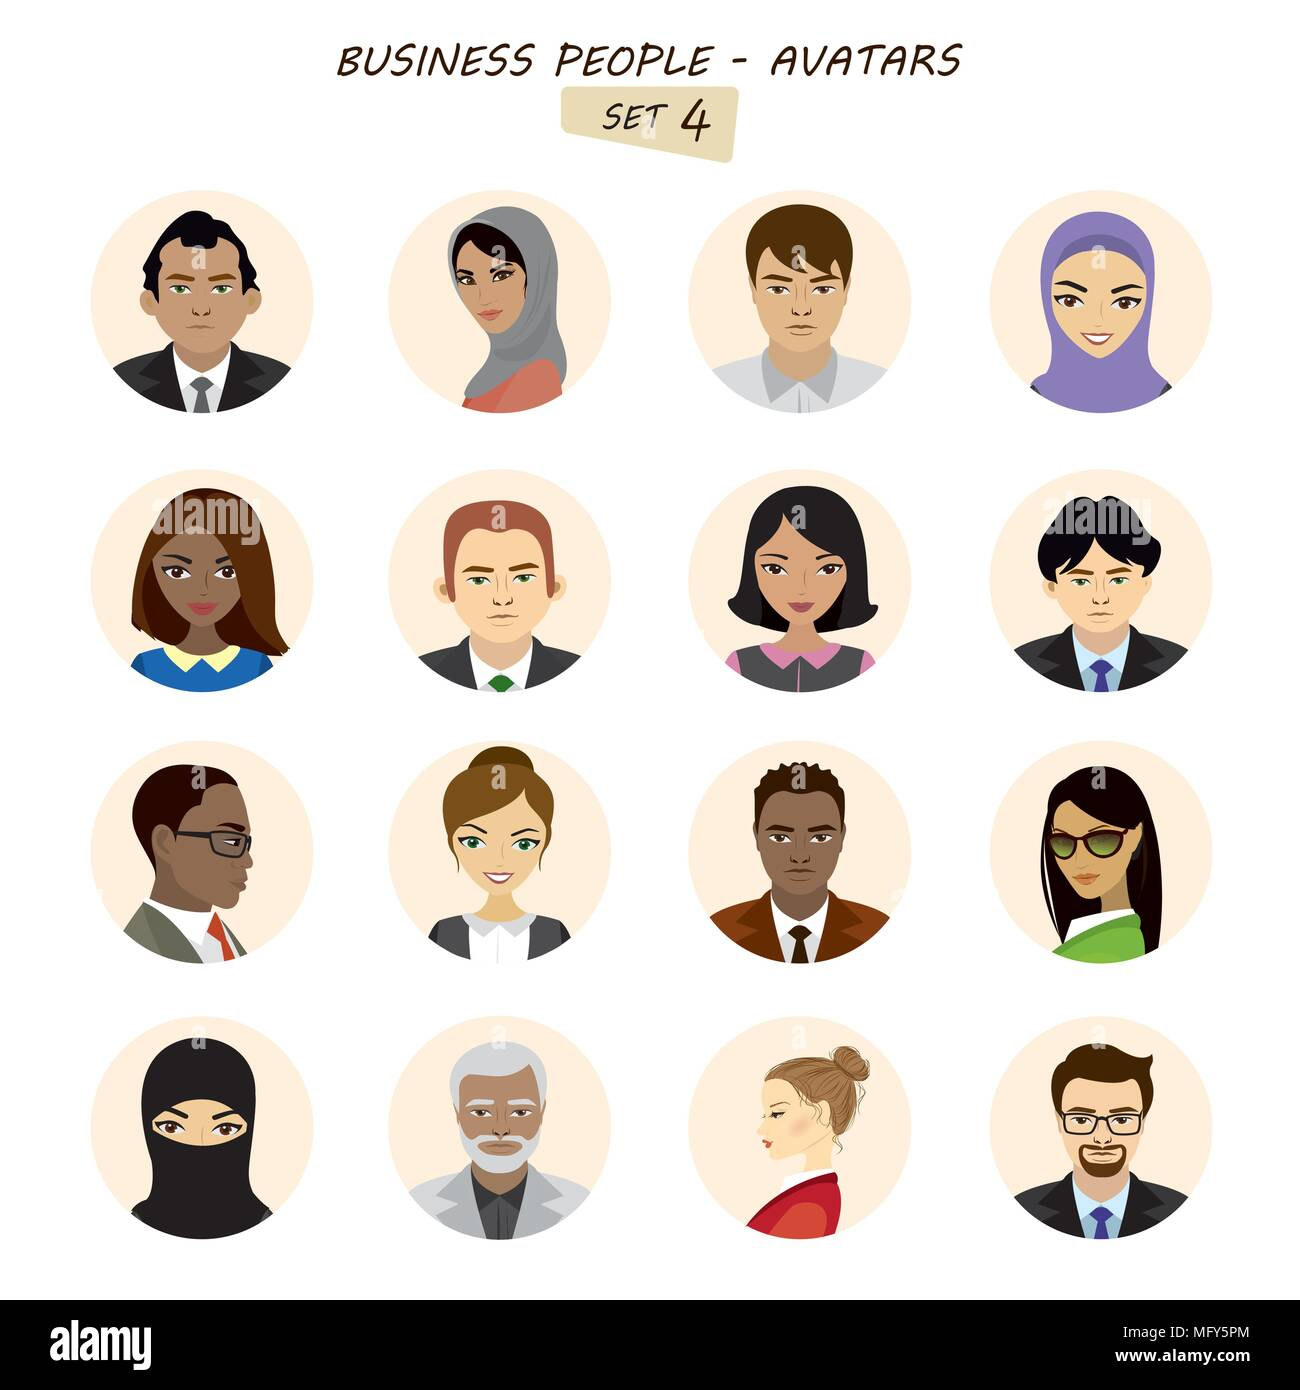 People avatars collection,business man and business woman different races, isolated on white background ,stock vector illustration. - Stock Image